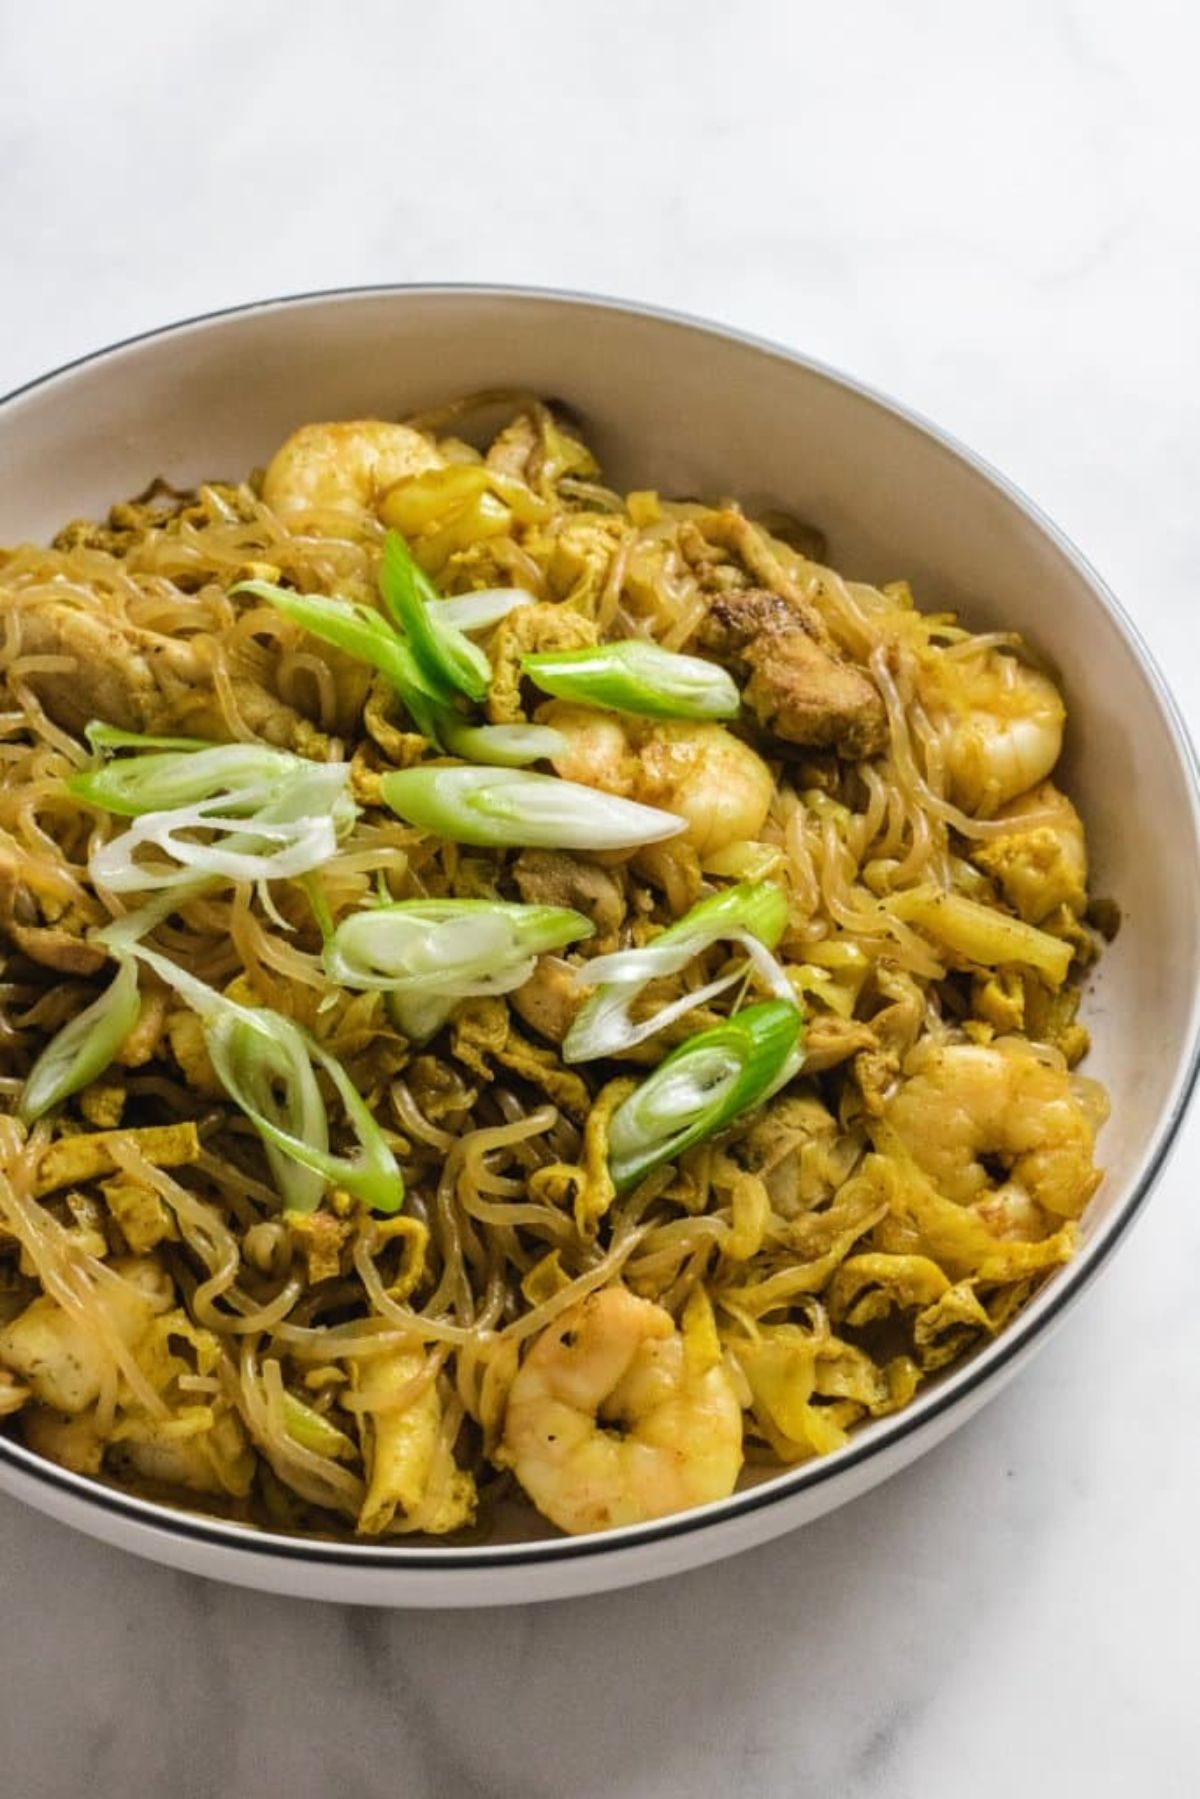 on a white surface is a white bowl with a blue rim. Inside is a pile of spaghetti with small peeled prawns, chopped spring onions and a yellowish sauce